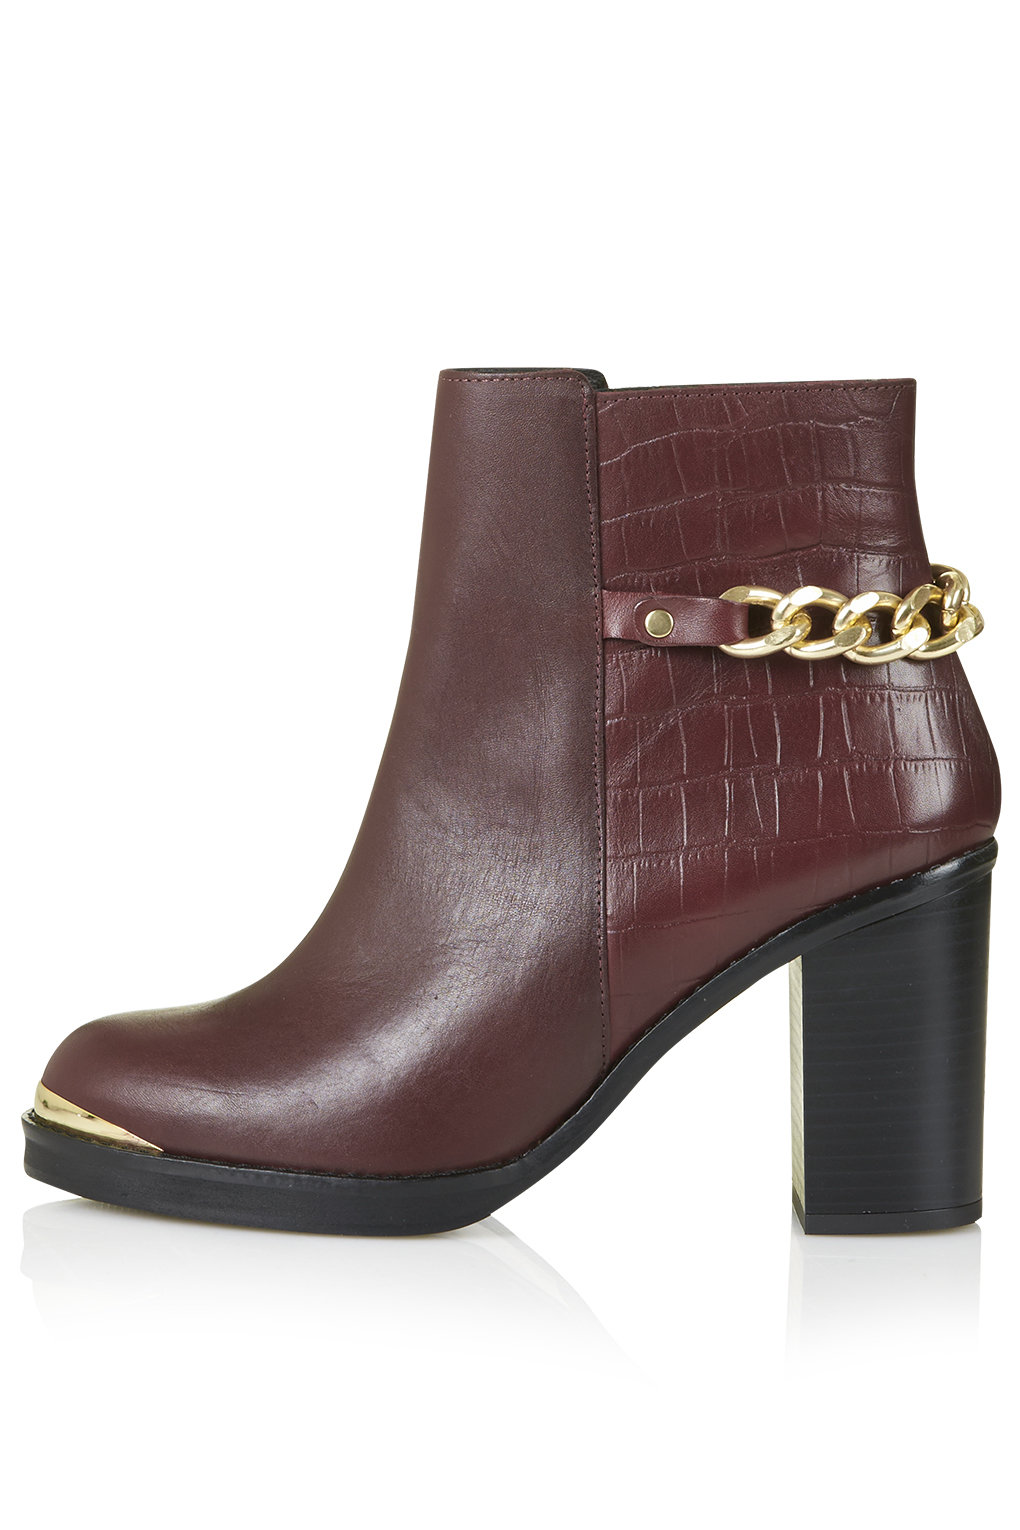 Merit Chain Boots New In This Week New In